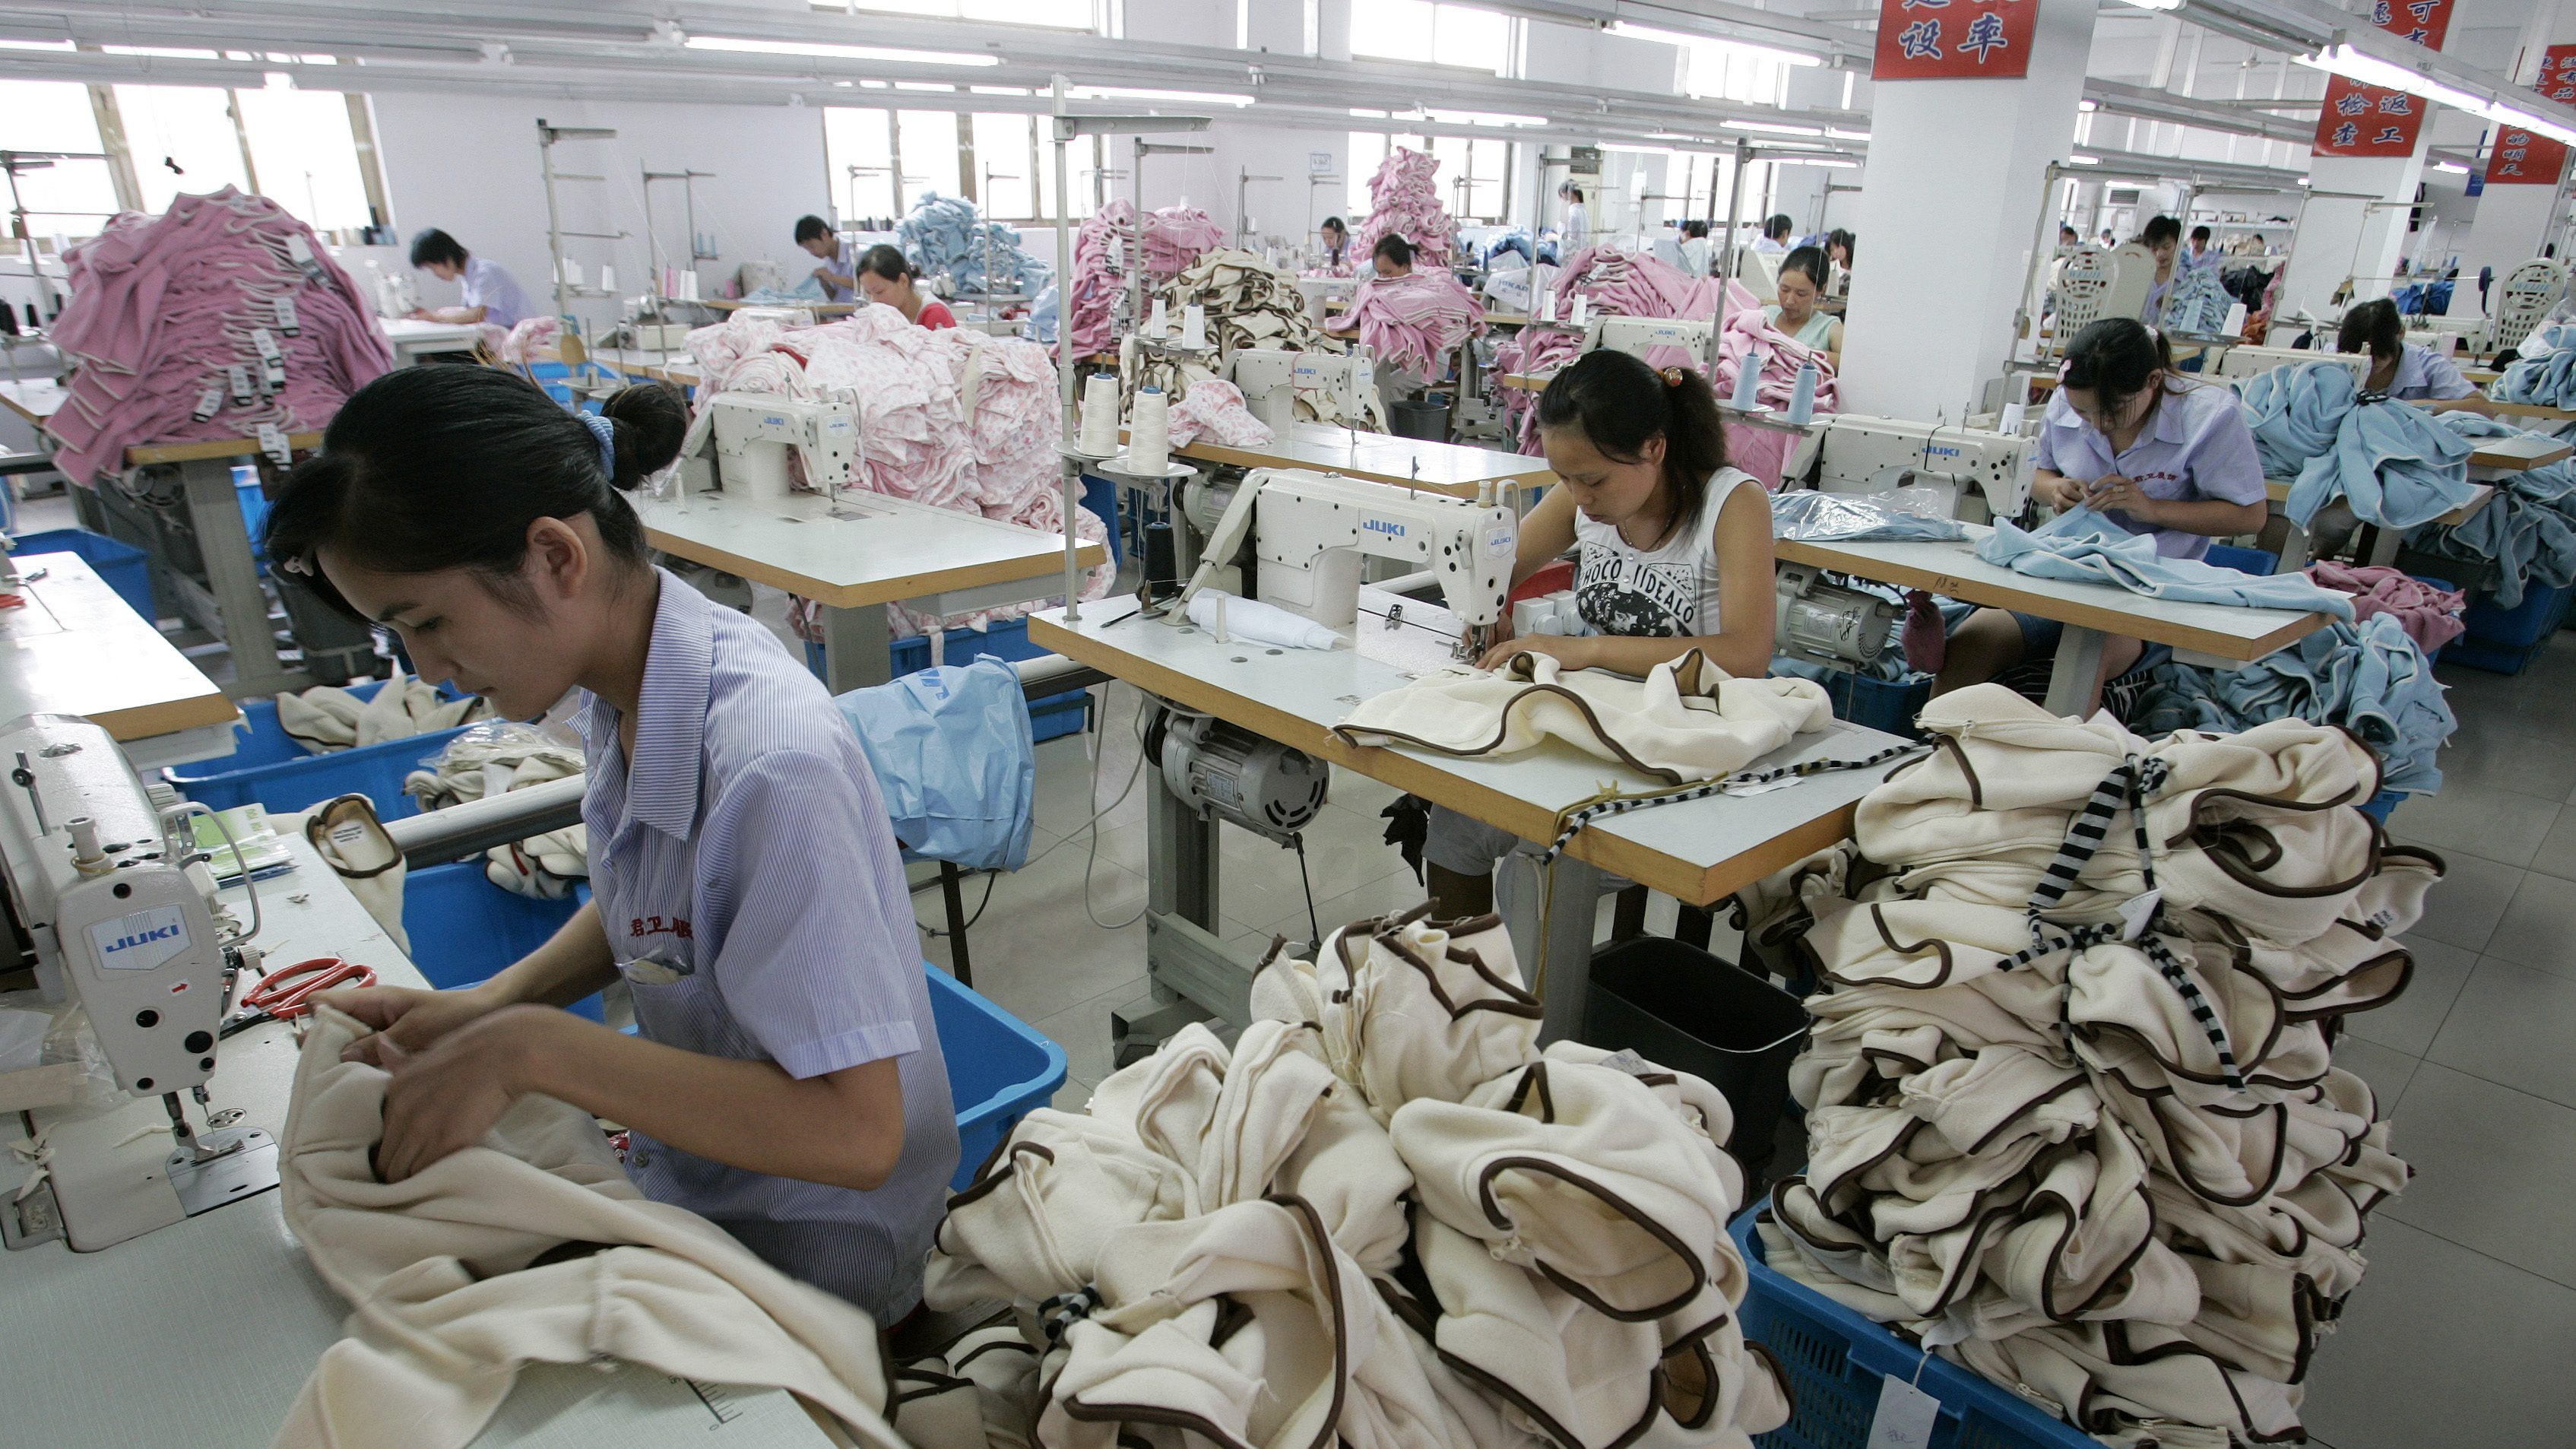 If China no longer wants to be the world's factory, who will take its place? thumbnail